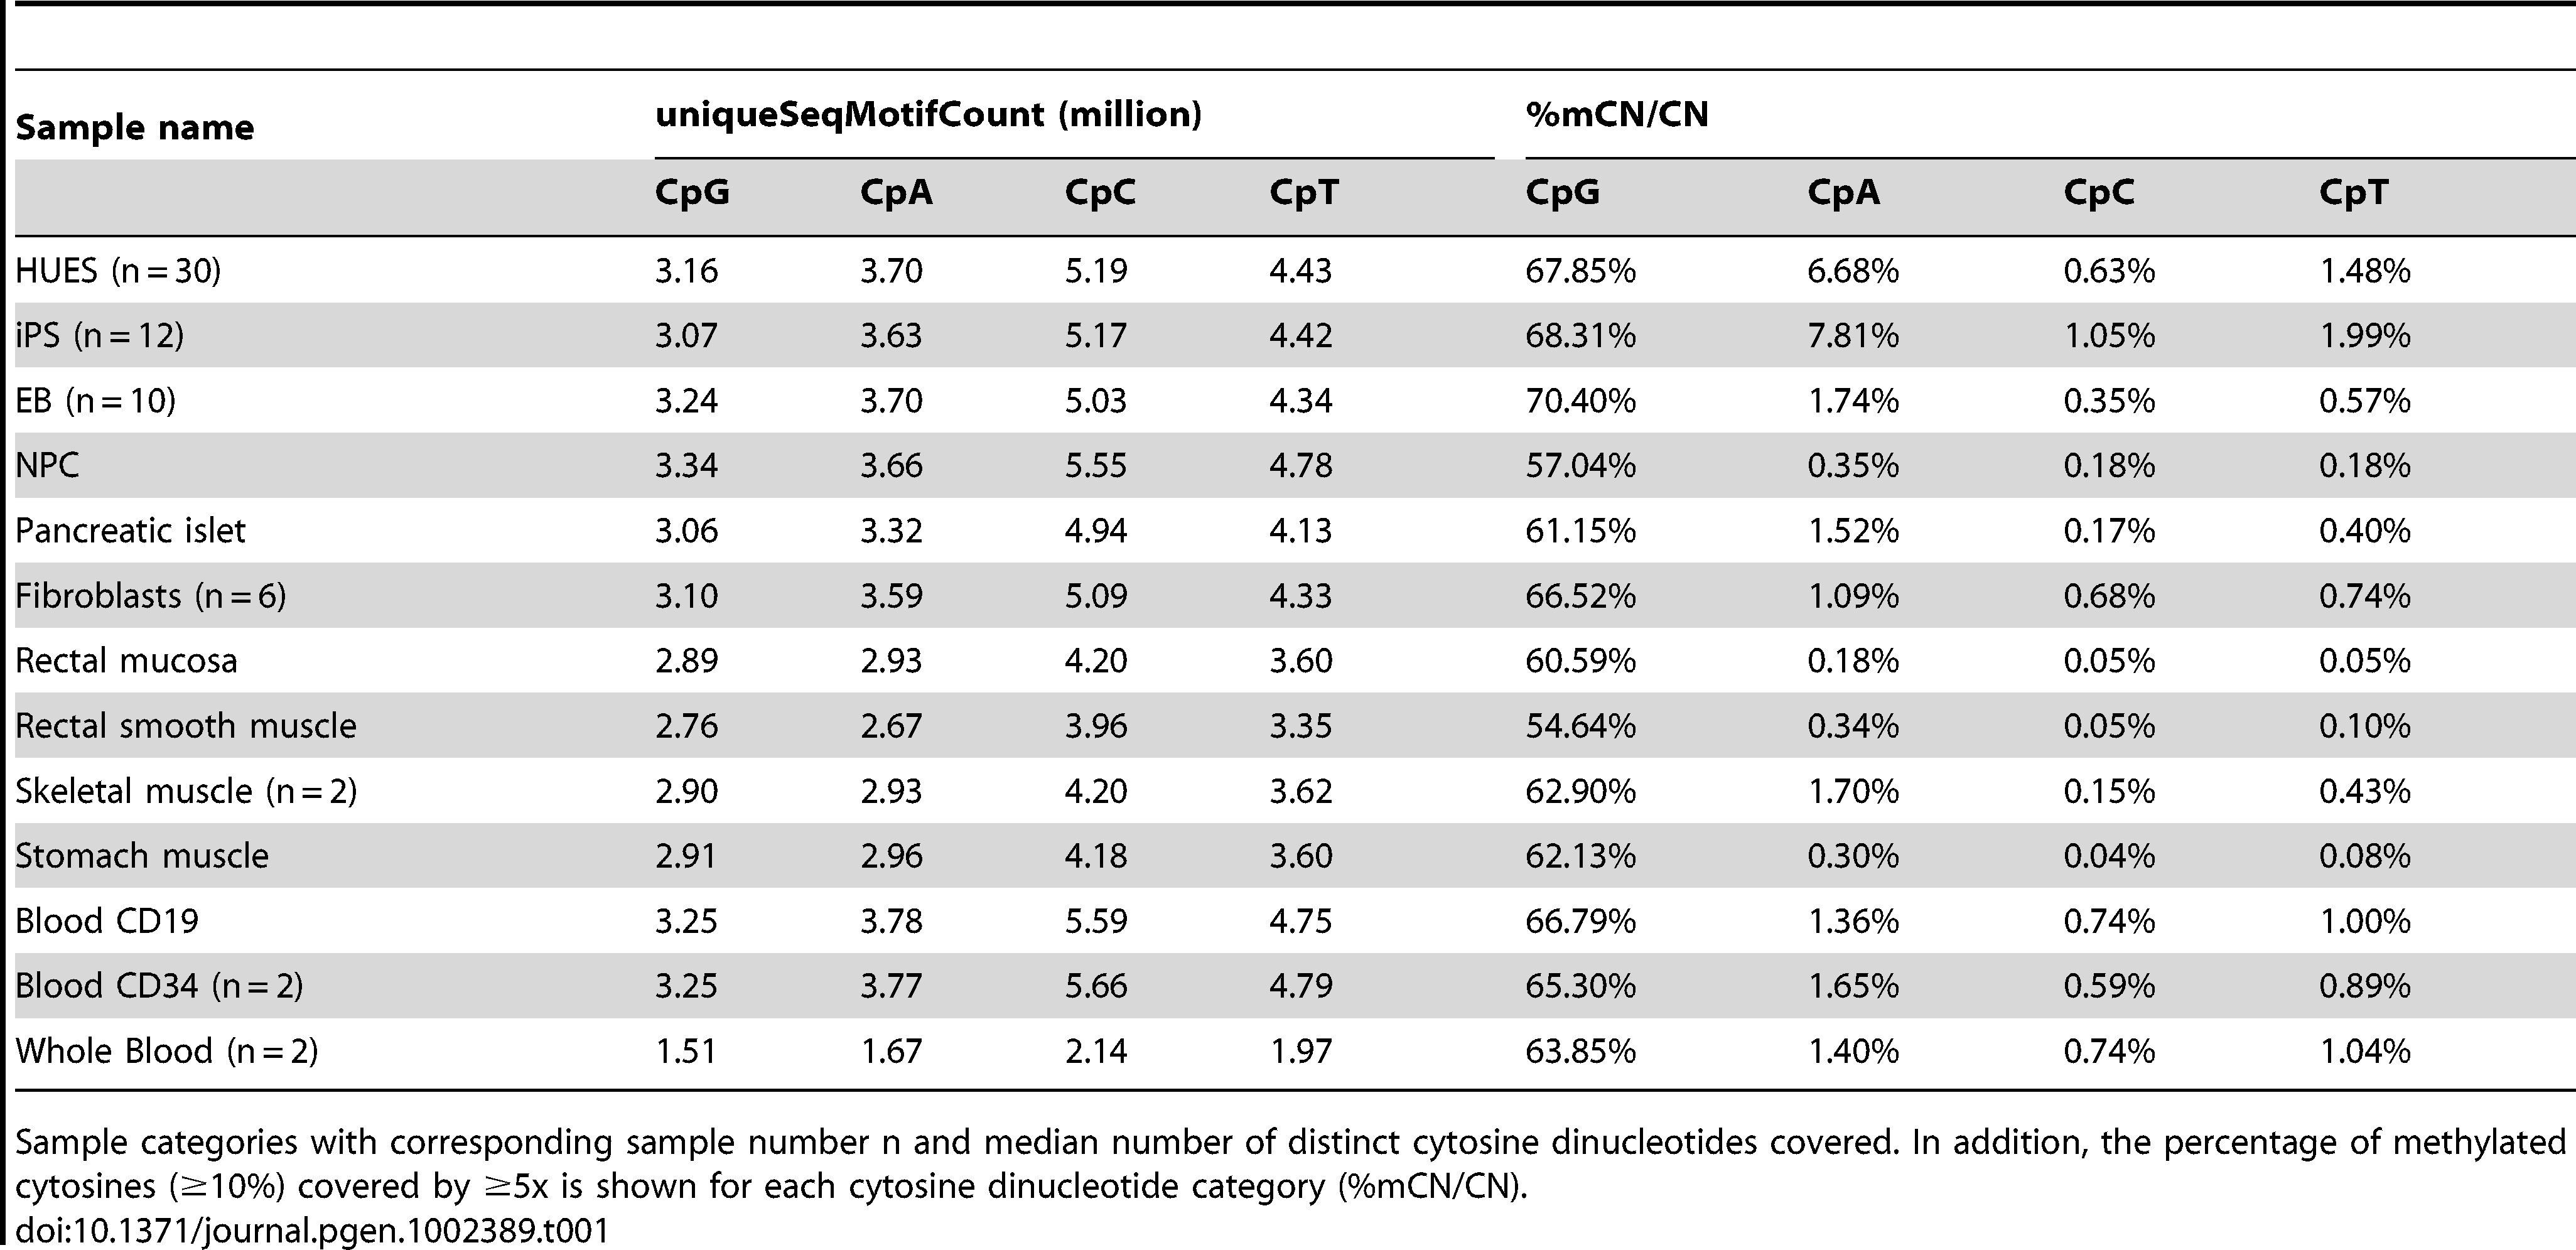 Summary statistics for samples included in this study.